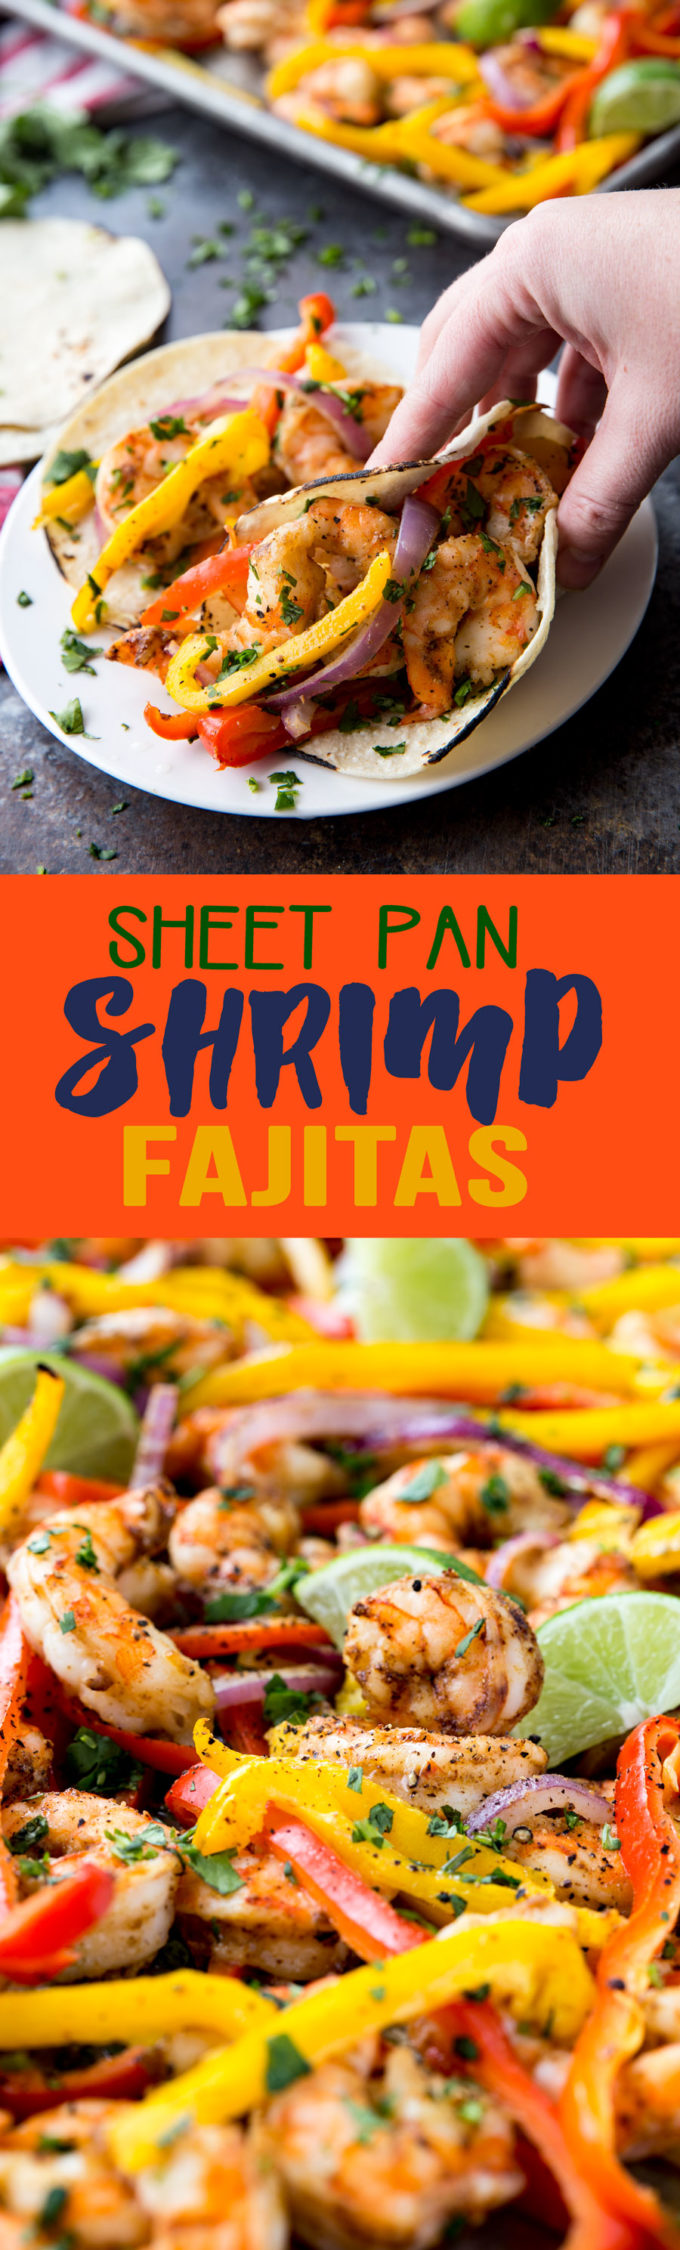 15 minute Sheet Pan Shrimp Fajitas. Start to finish this meal takes mere minutes to have on the table. Enjoy!